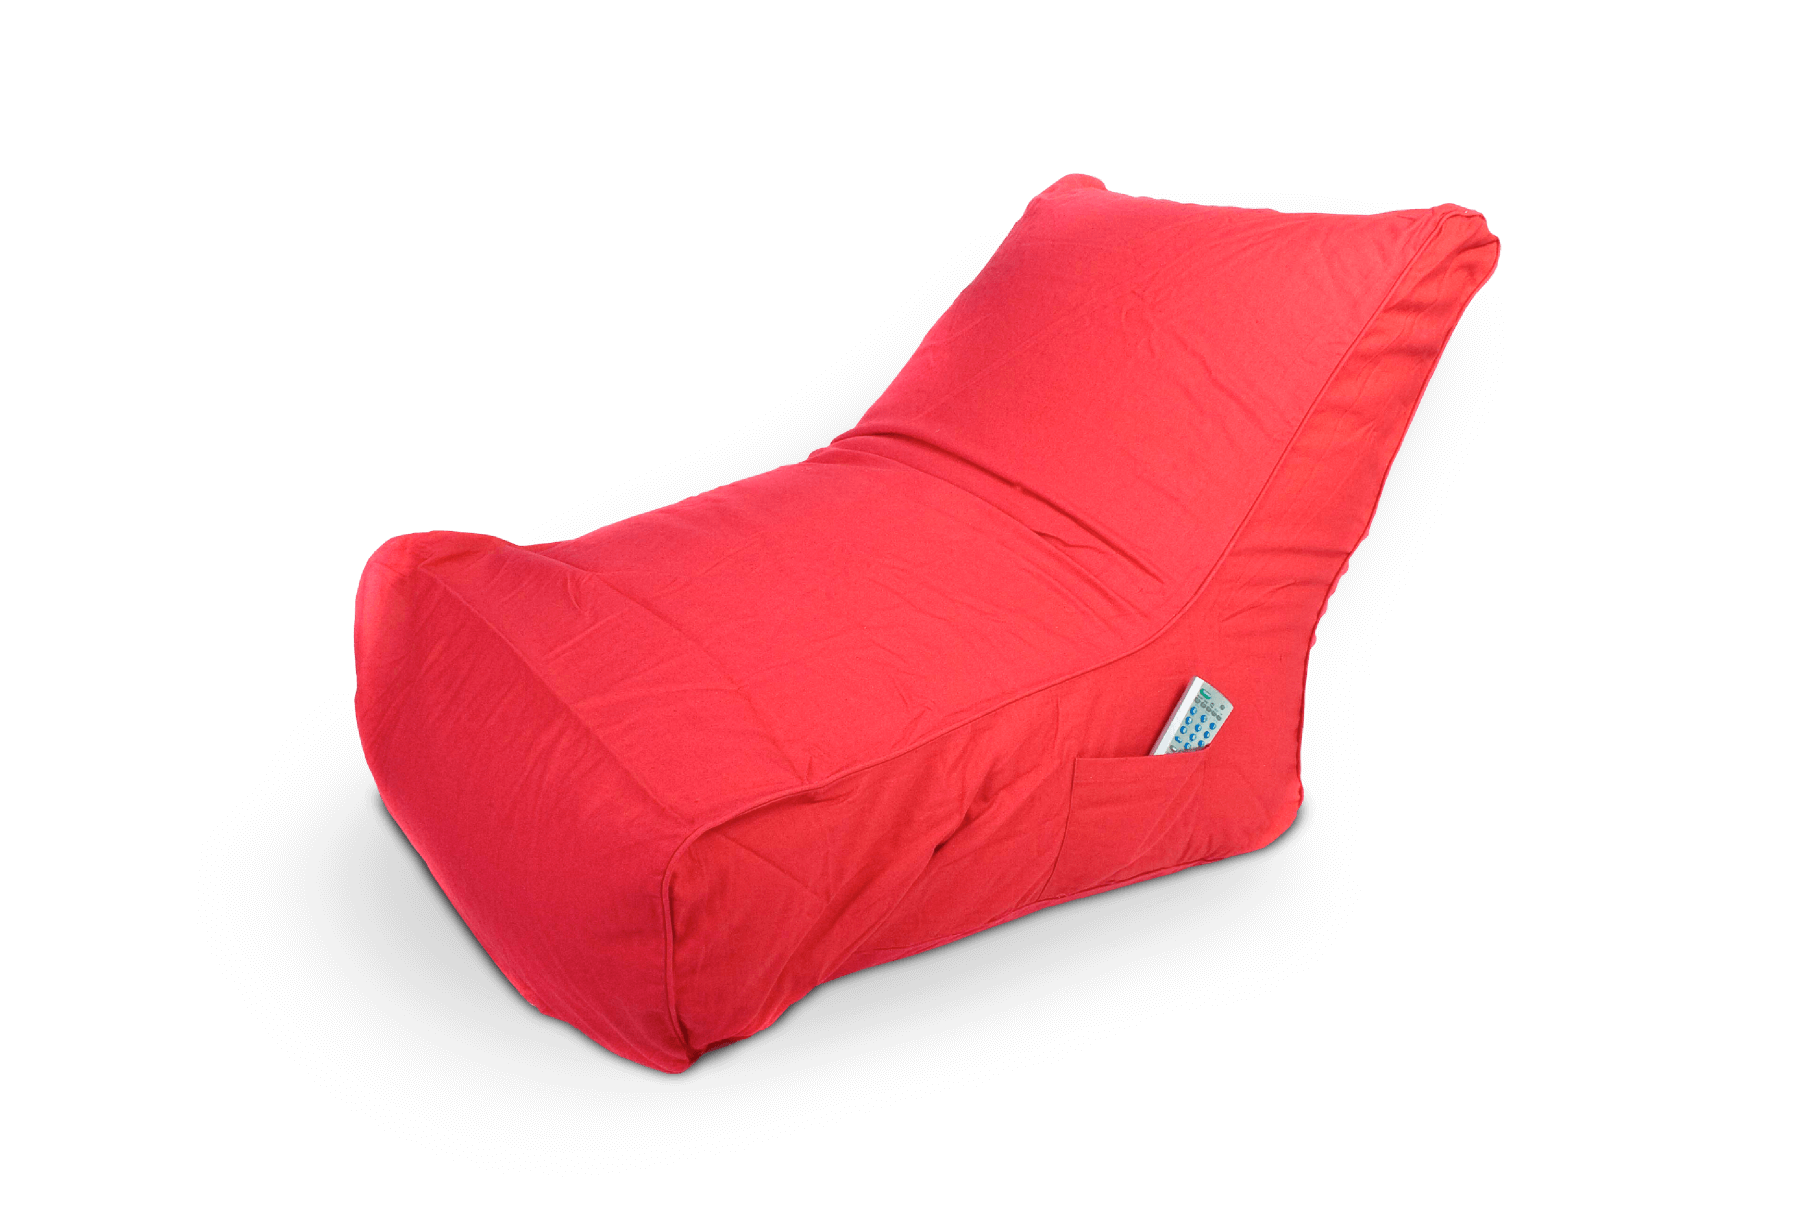 Lounge Chair Lounge Chair Special Sitzsack Manufaktur Smoothy